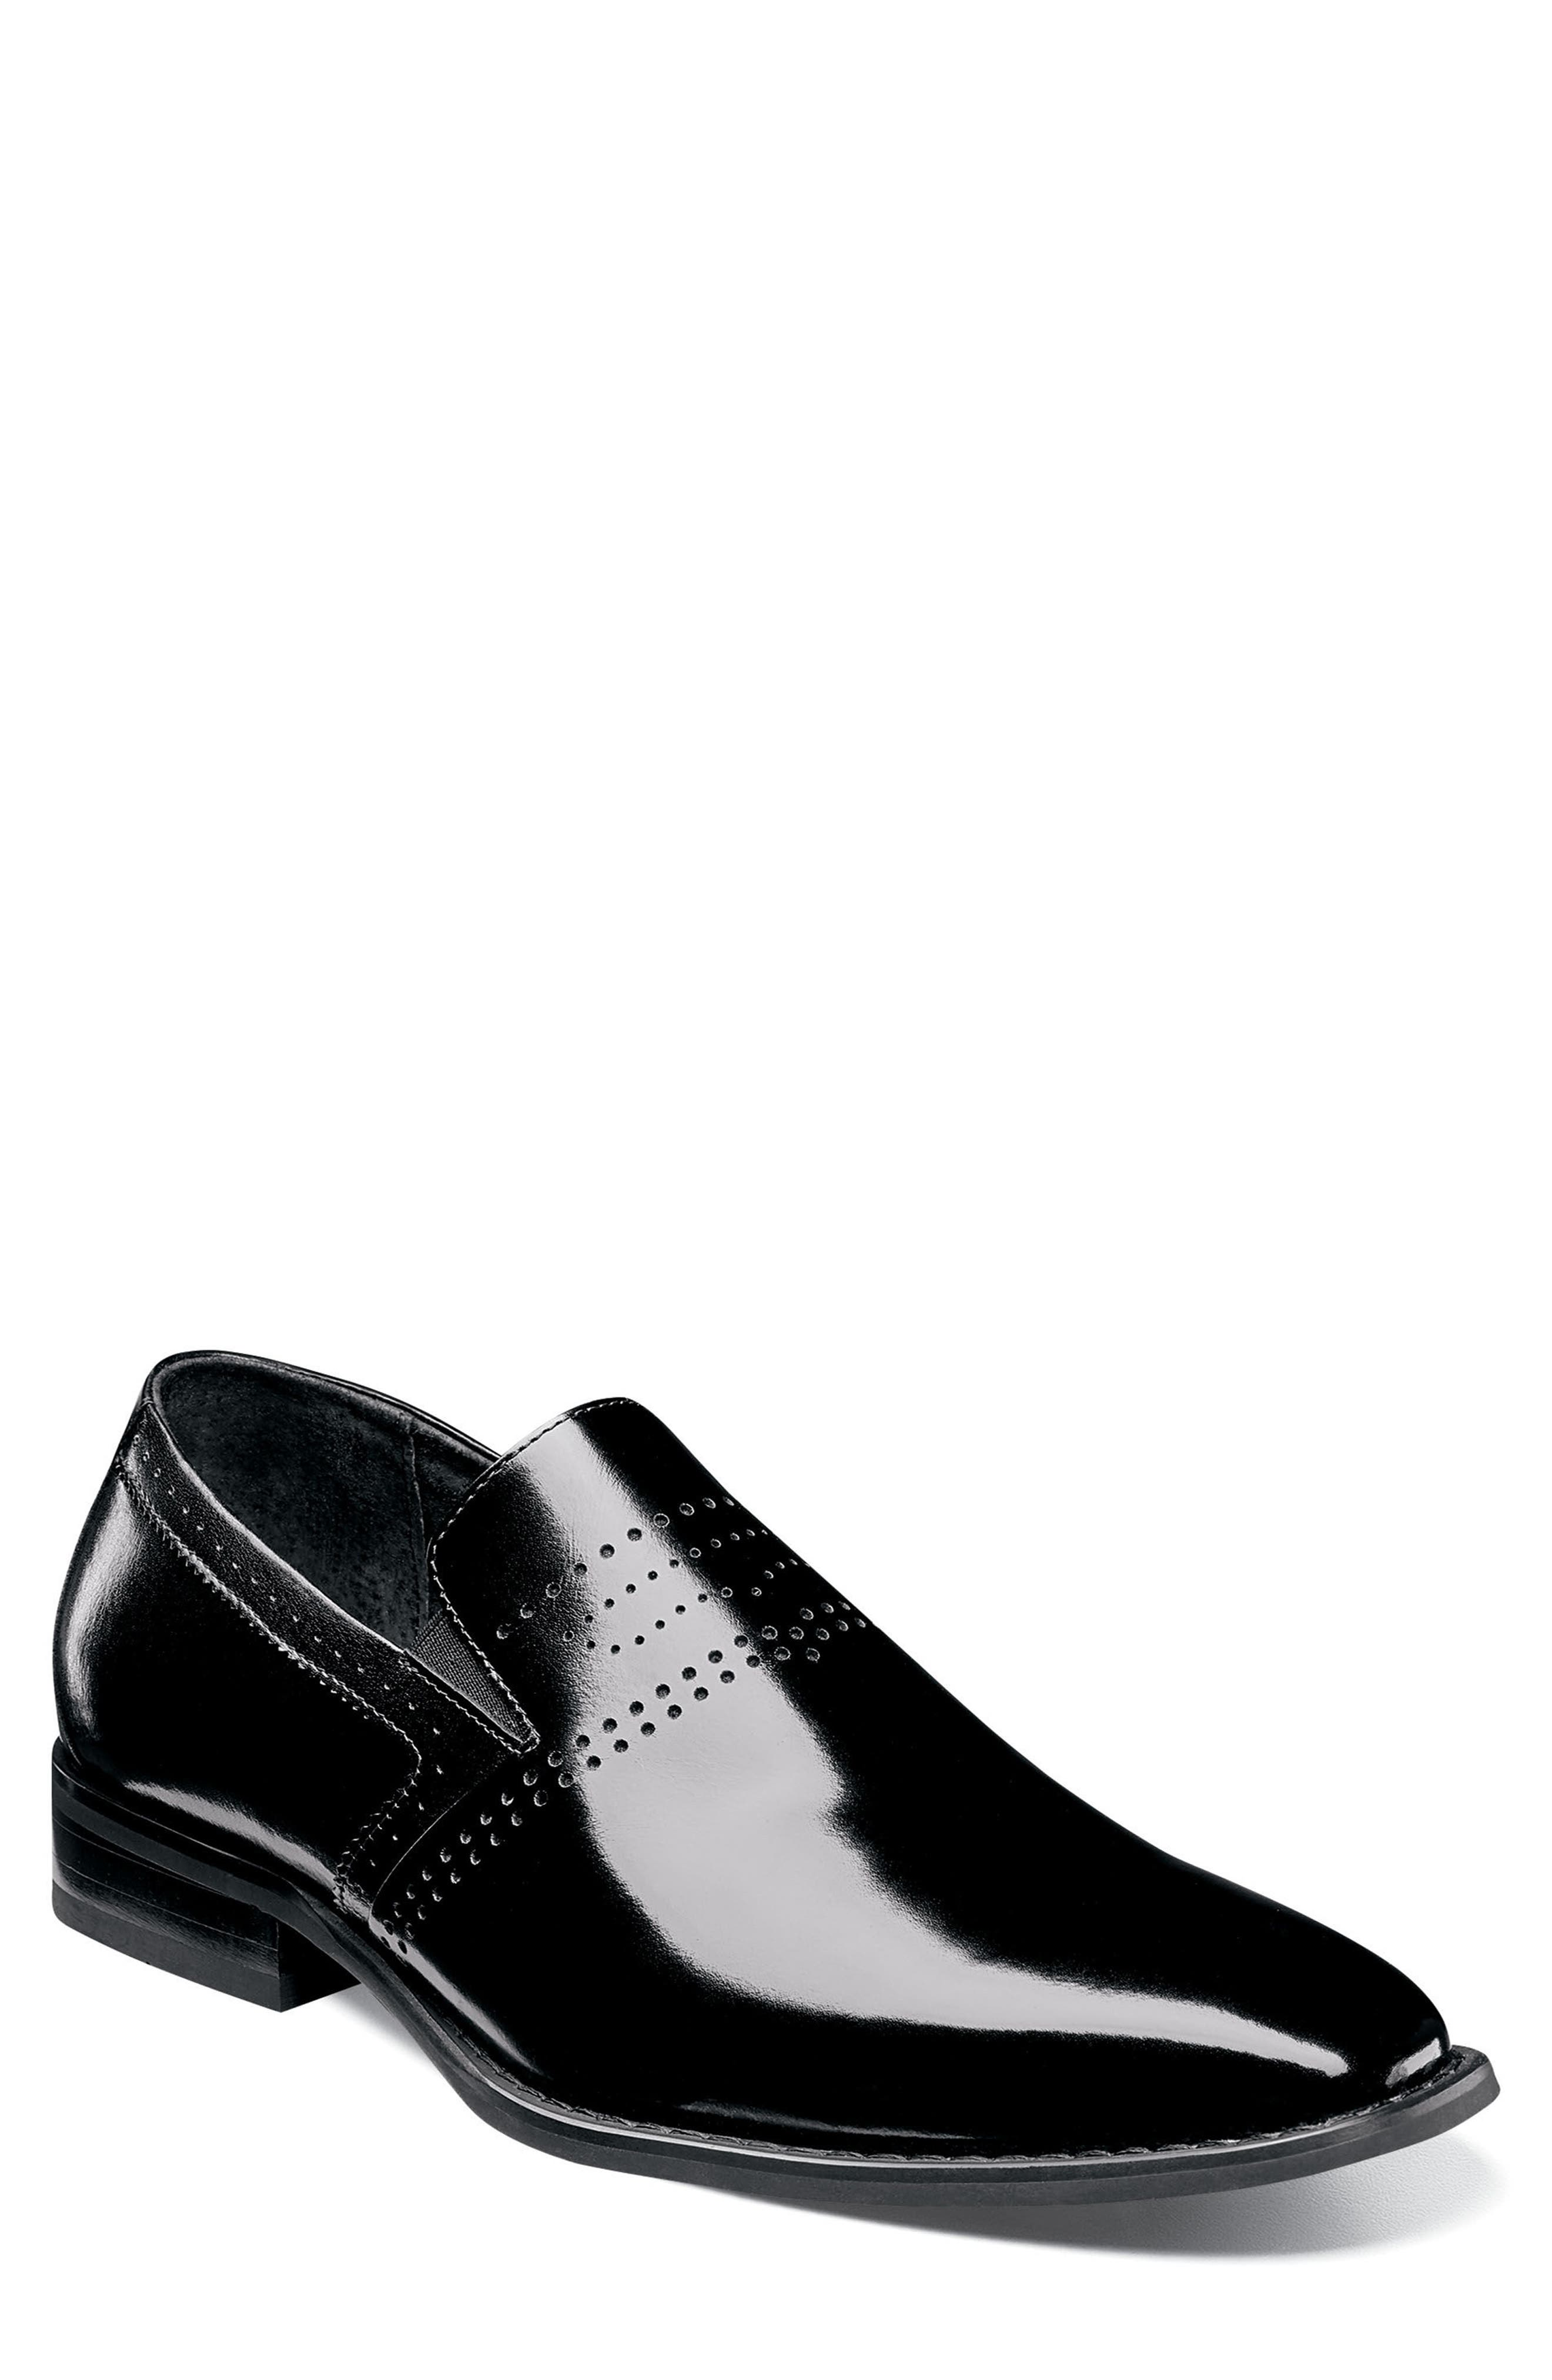 Main Image - Stacy Adams Saunders Perforated Venetian Loafer (Men)